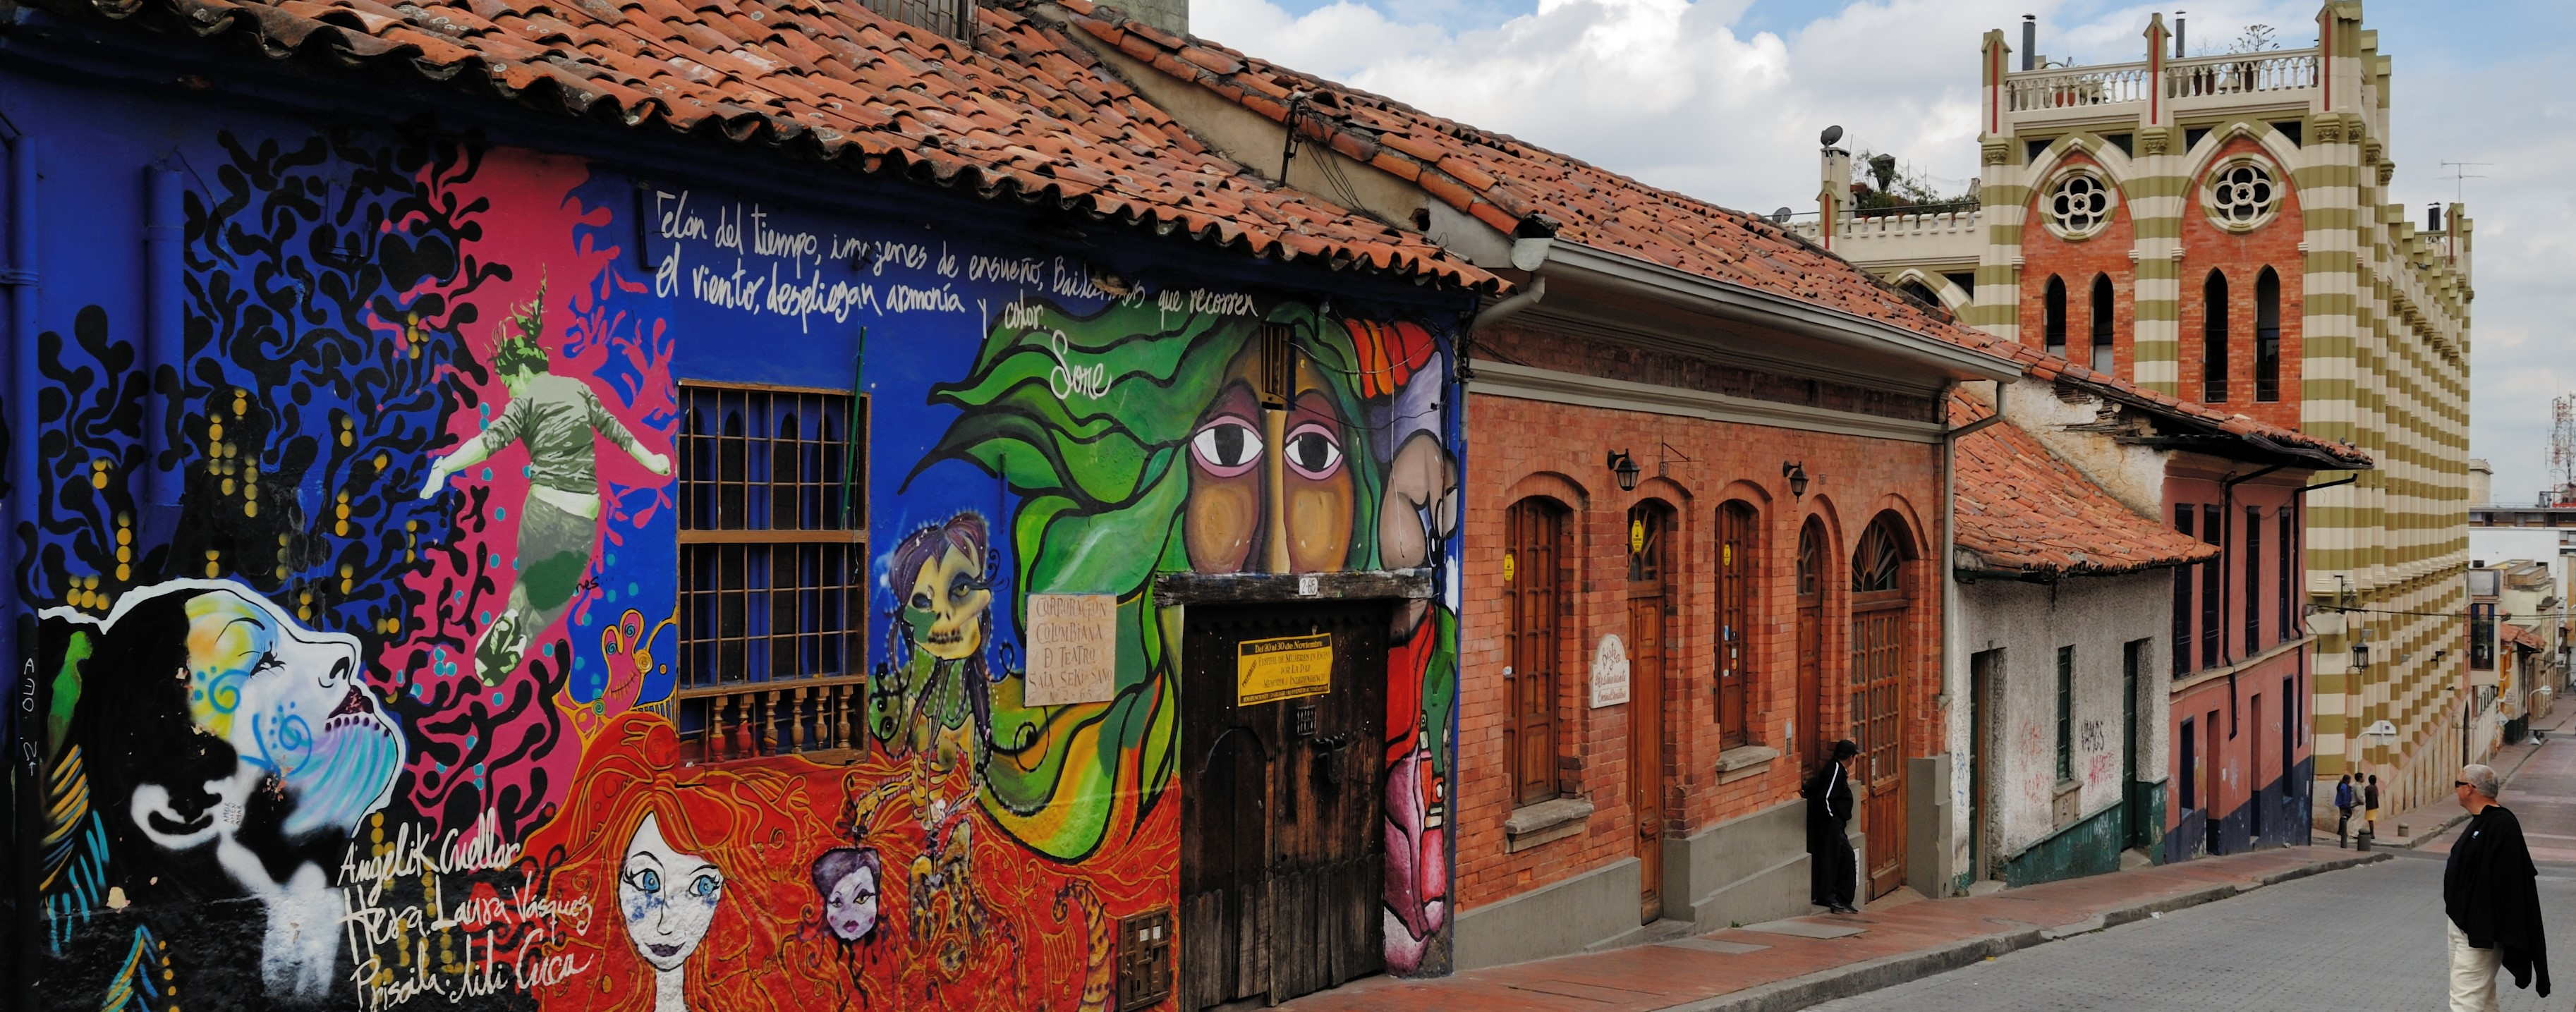 https://www.kontour-travel.com/wp-content/uploads/bogota-colombia-candelaria-012-2.jpg